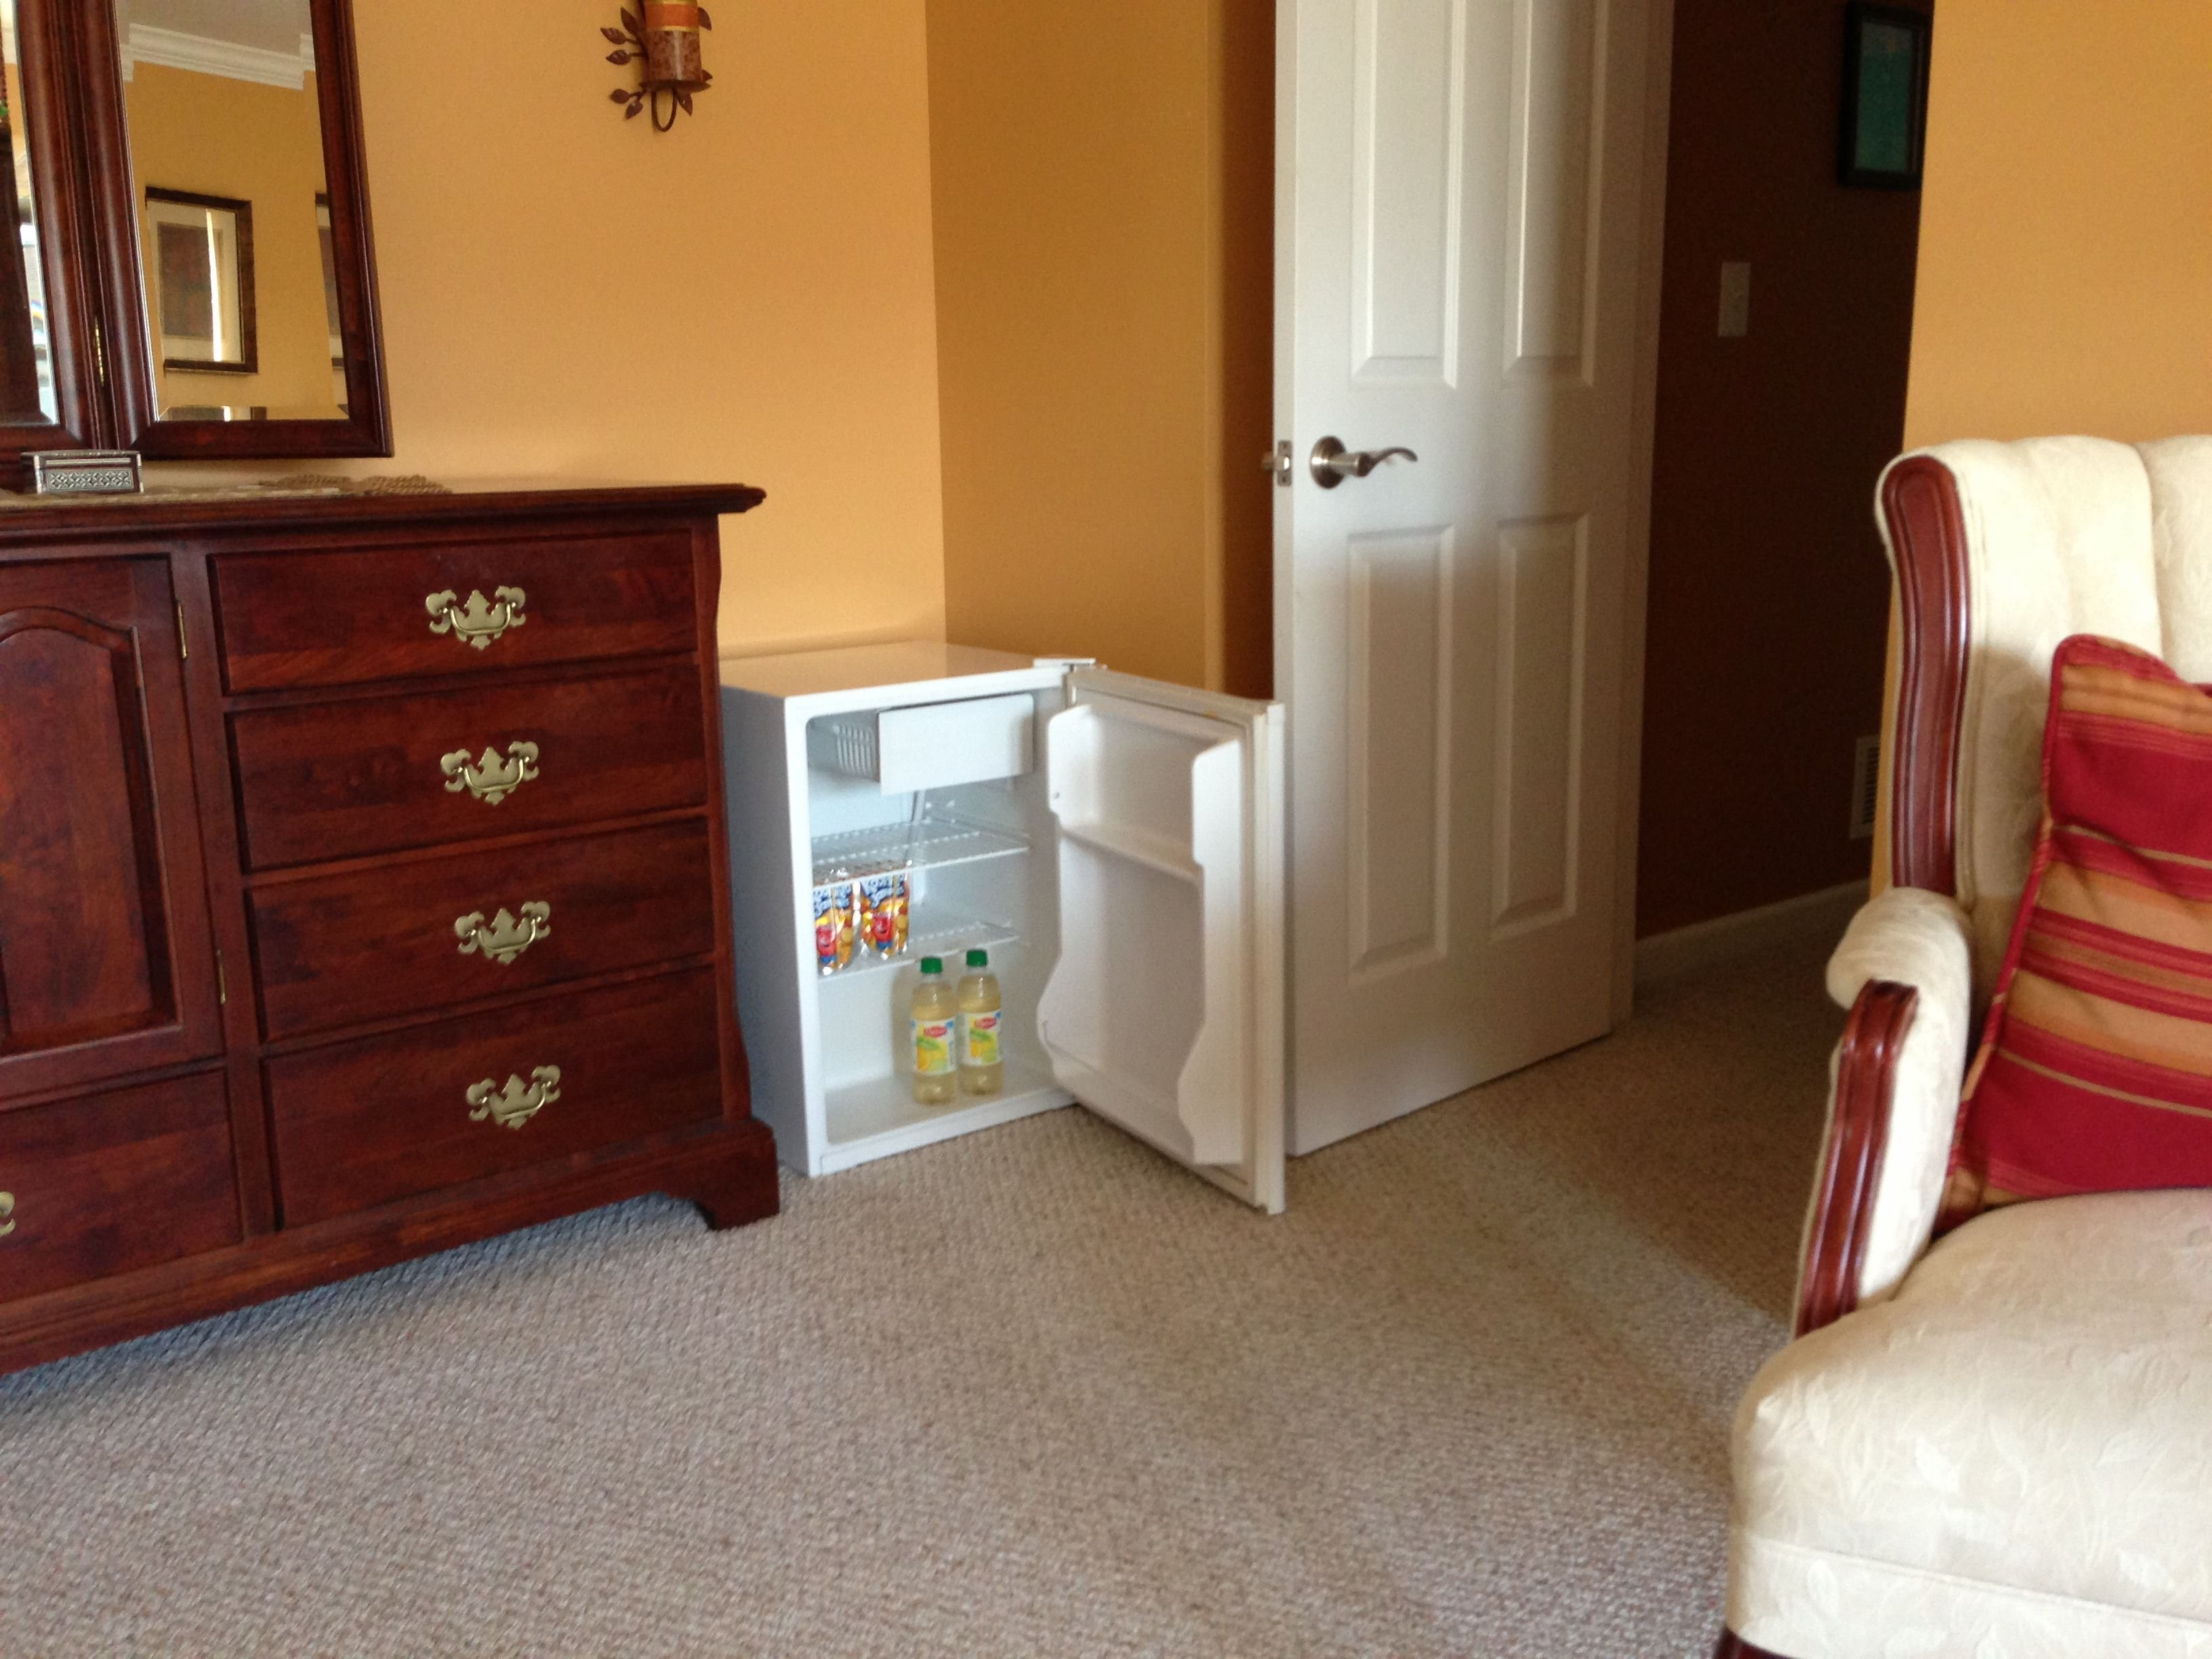 Best Laziness Idea I Put Our Mini Fridge In A Corner Of Our Master Bedroom Now We Don T Have To With Pictures